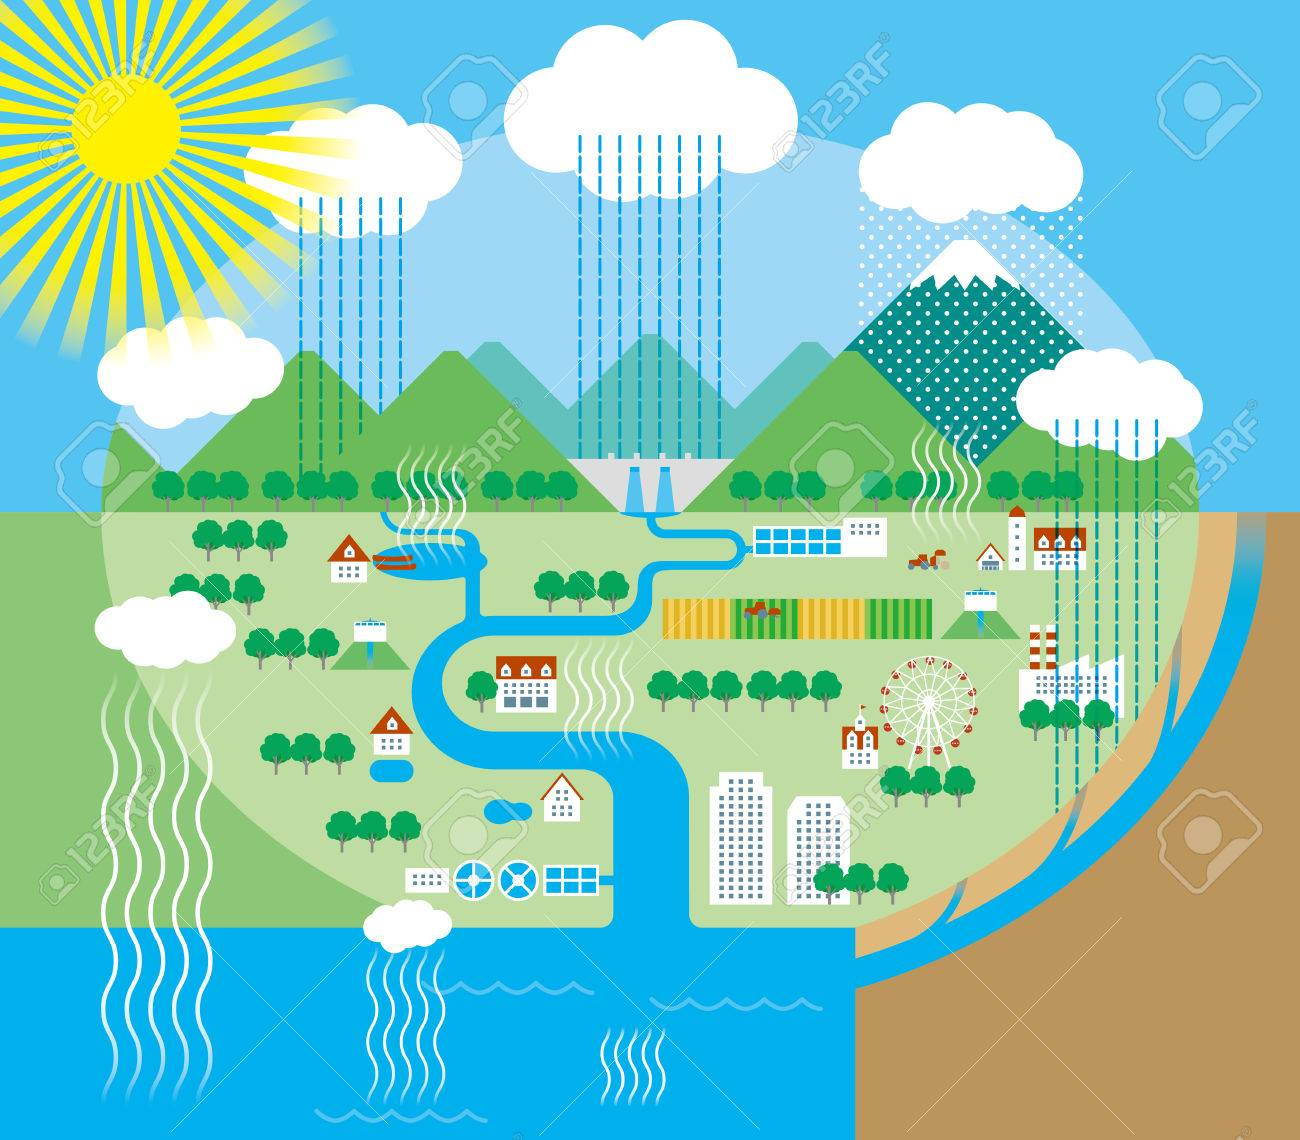 water cycle - 55995677